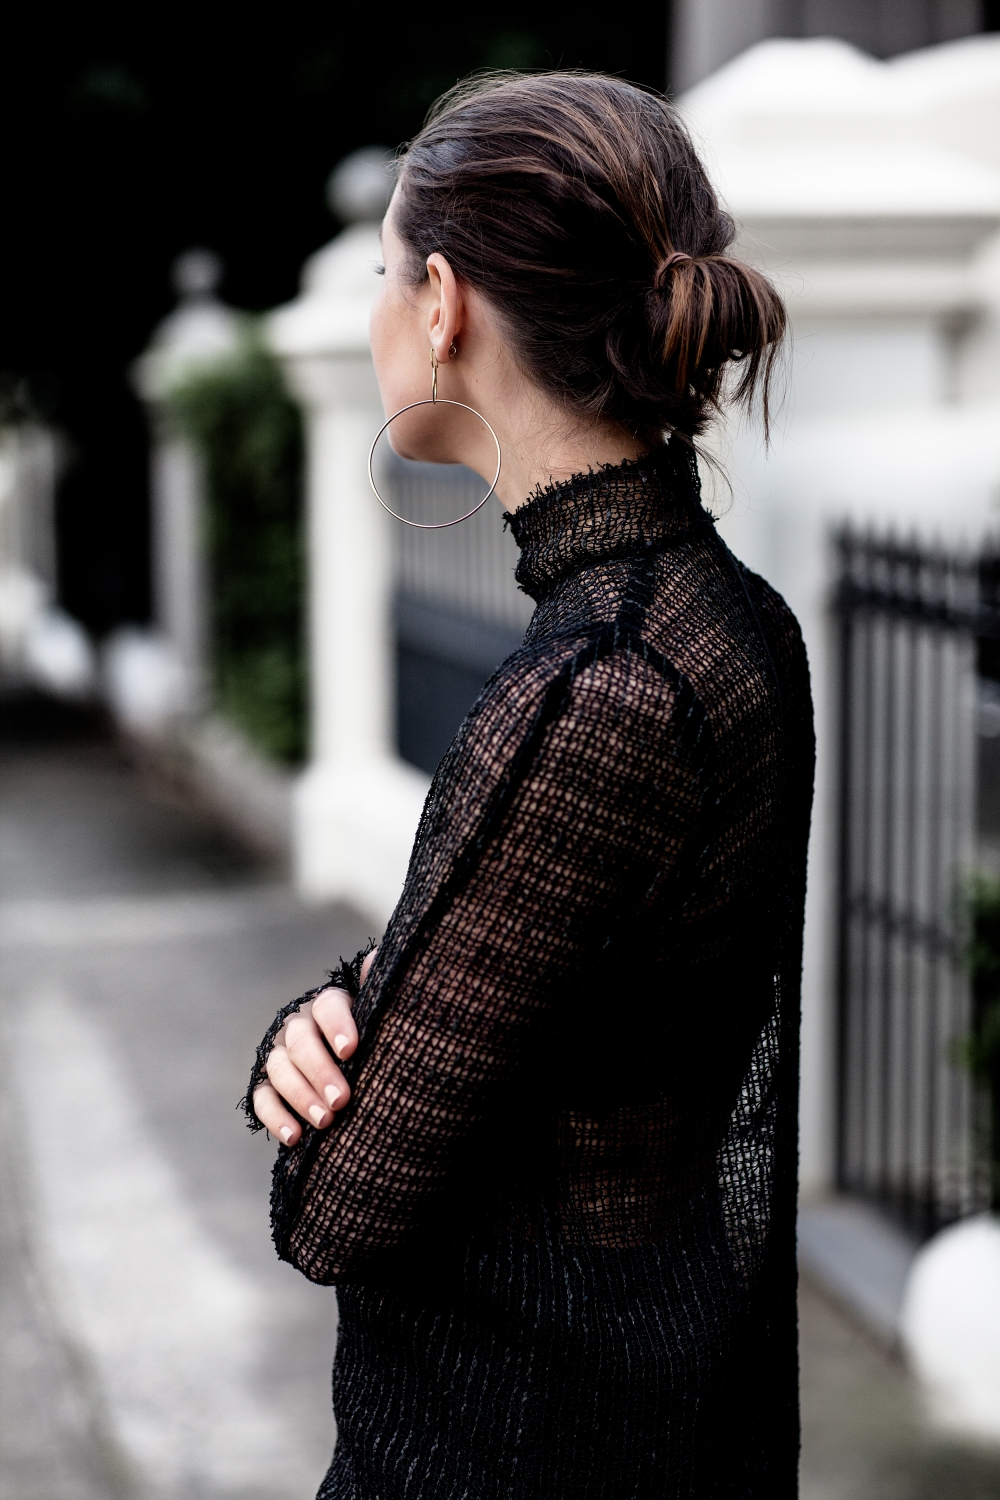 KITX Web Net Polo top from The UNDONE | all black outfit | style | Harper and Harley